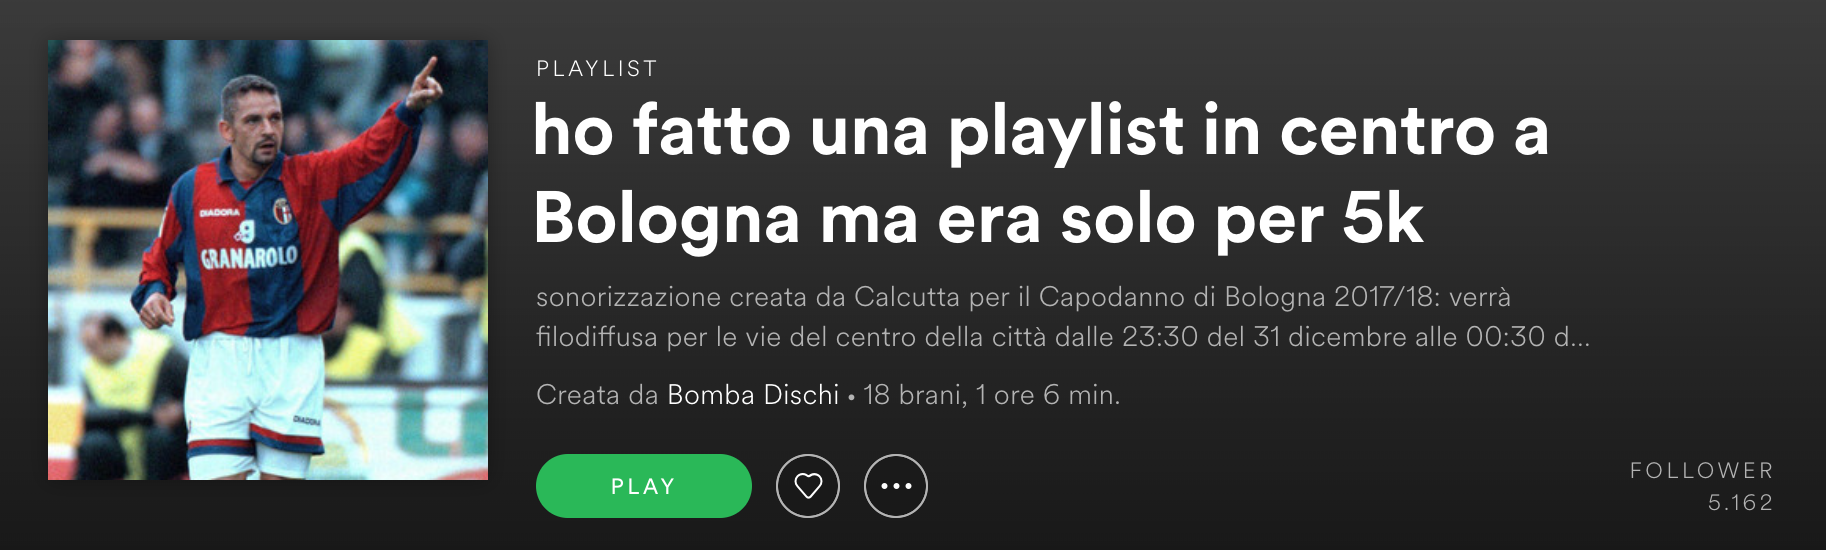 Come Promuovere Musica Su Spotify - Playlist Calcutta